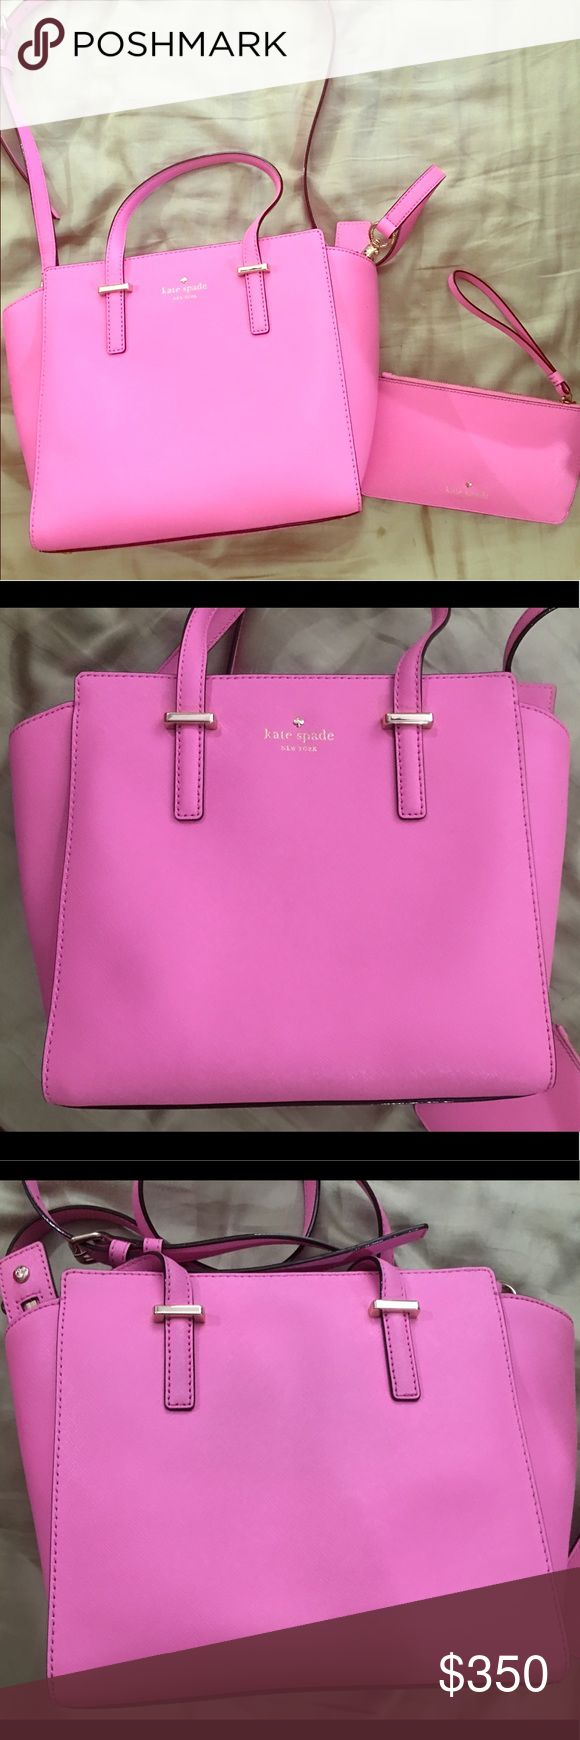 Kate Spade Pink Purse and Wallet Brand new, I have the original bag it came in. Selling both wallet and purse together. It's hot pink and has no damage to both items. kate spade Bags Crossbody Bags